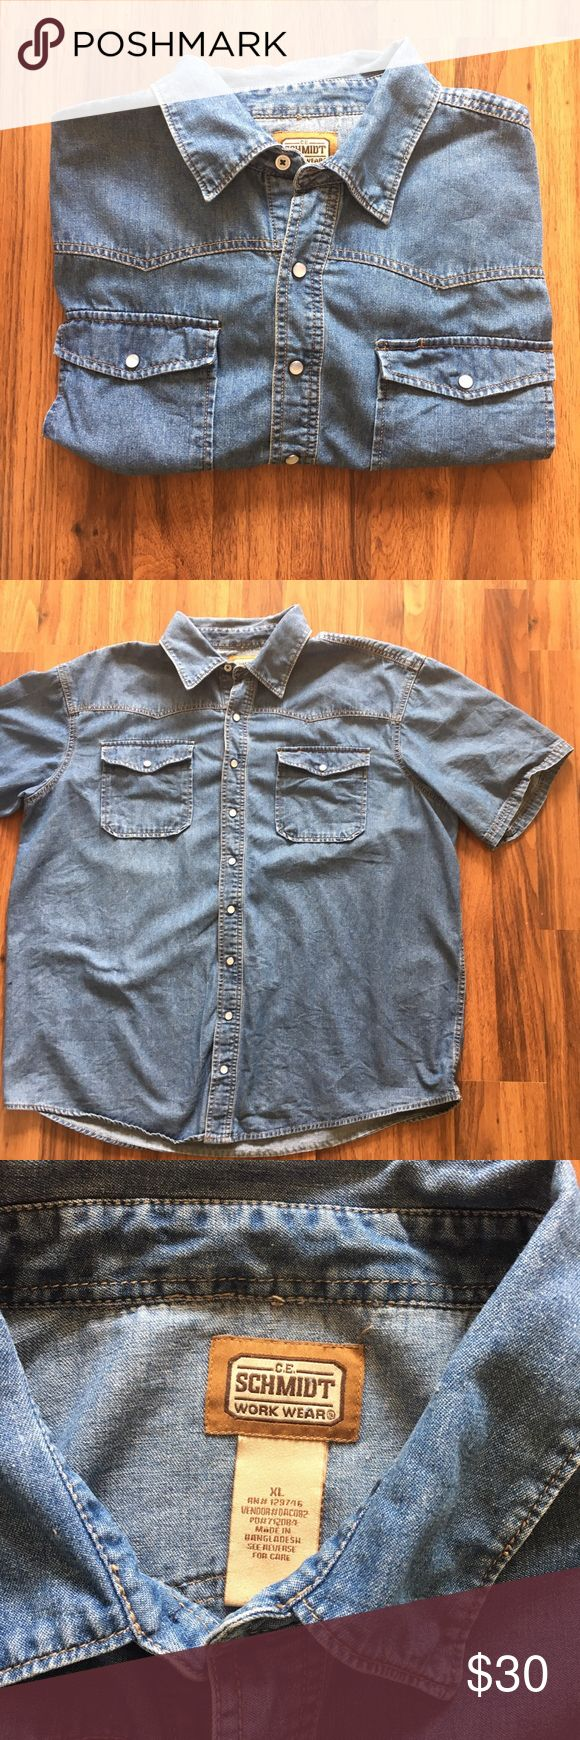 Short Sleeved Denim Shirt 🍺 Short Sleeve Denim Shirt 🍺 / button front snap buttons with one regular button at collar / 9/10 condition bc of small stain near left beast pocket, hardly noticeable / tags levi's lee wrangler rider calvin klein Ralph Lauren categorized for visibility Ralph Lauren Shirts Casual Button Down Shirts